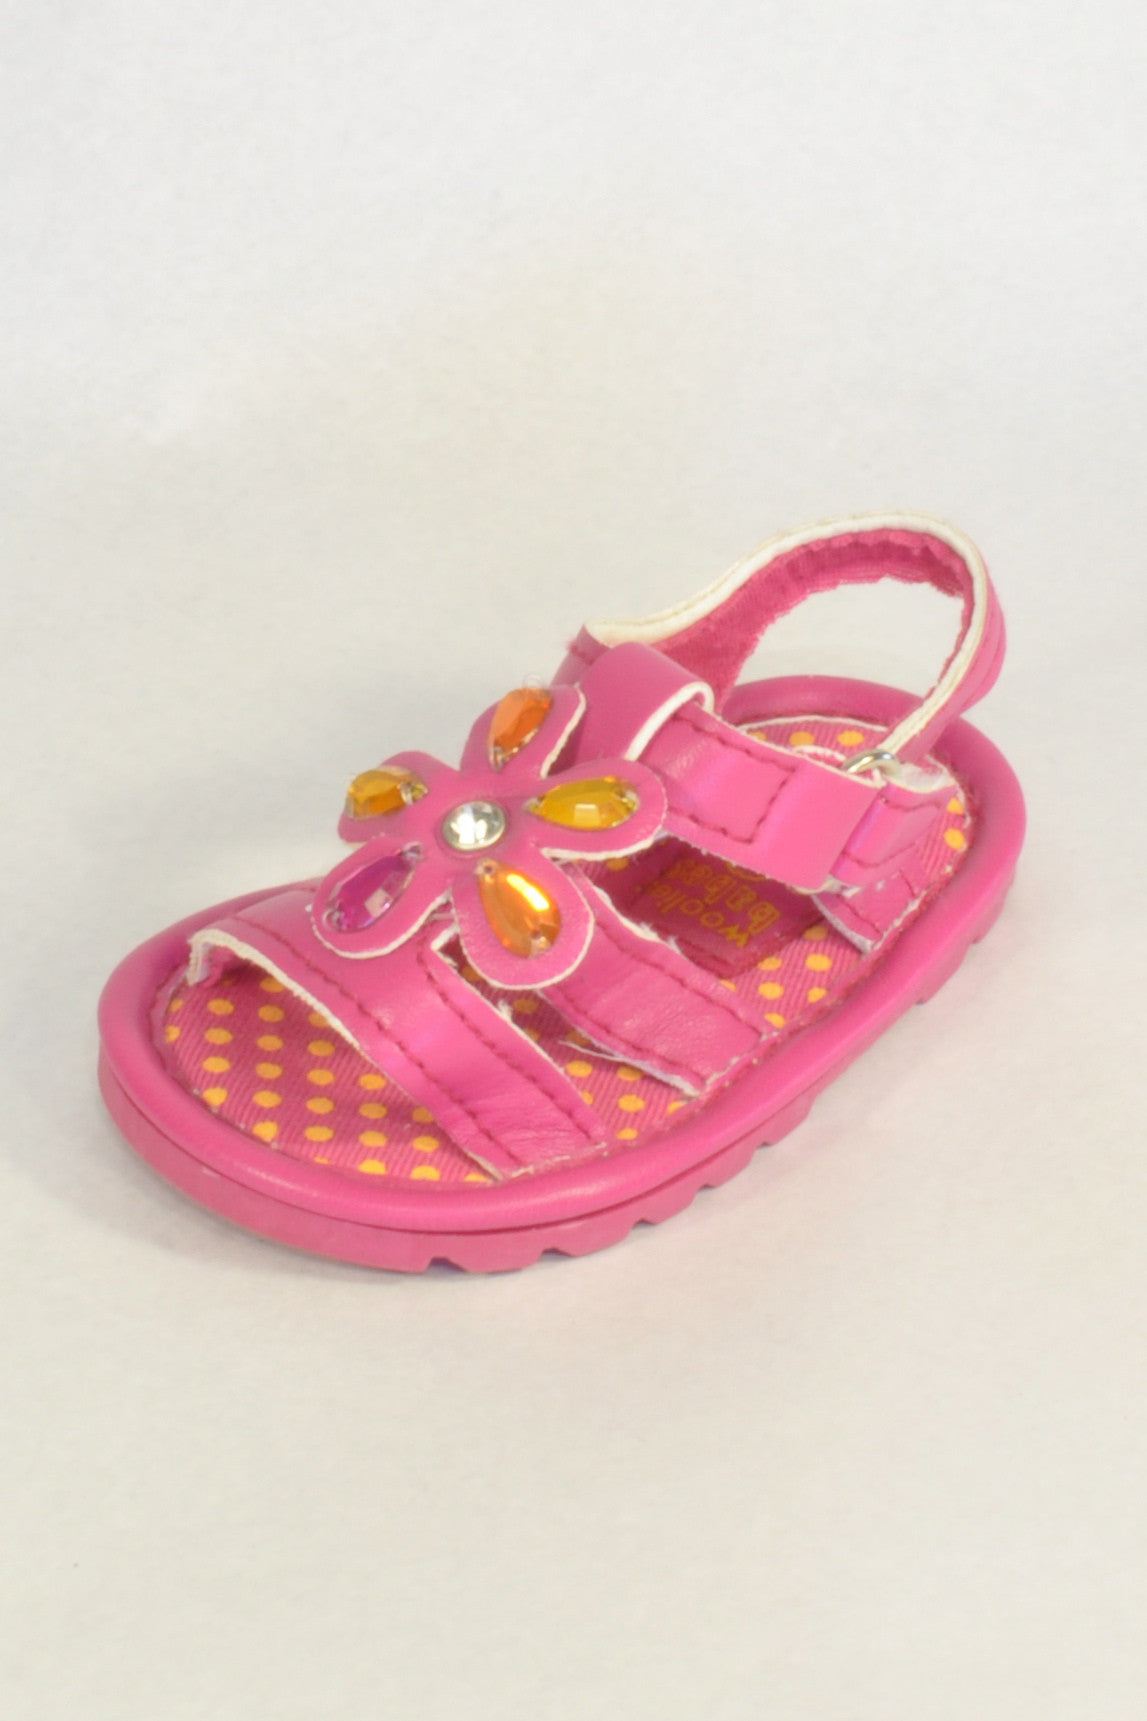 Woolies Pink Jewel Sandals Girls 3-6 months